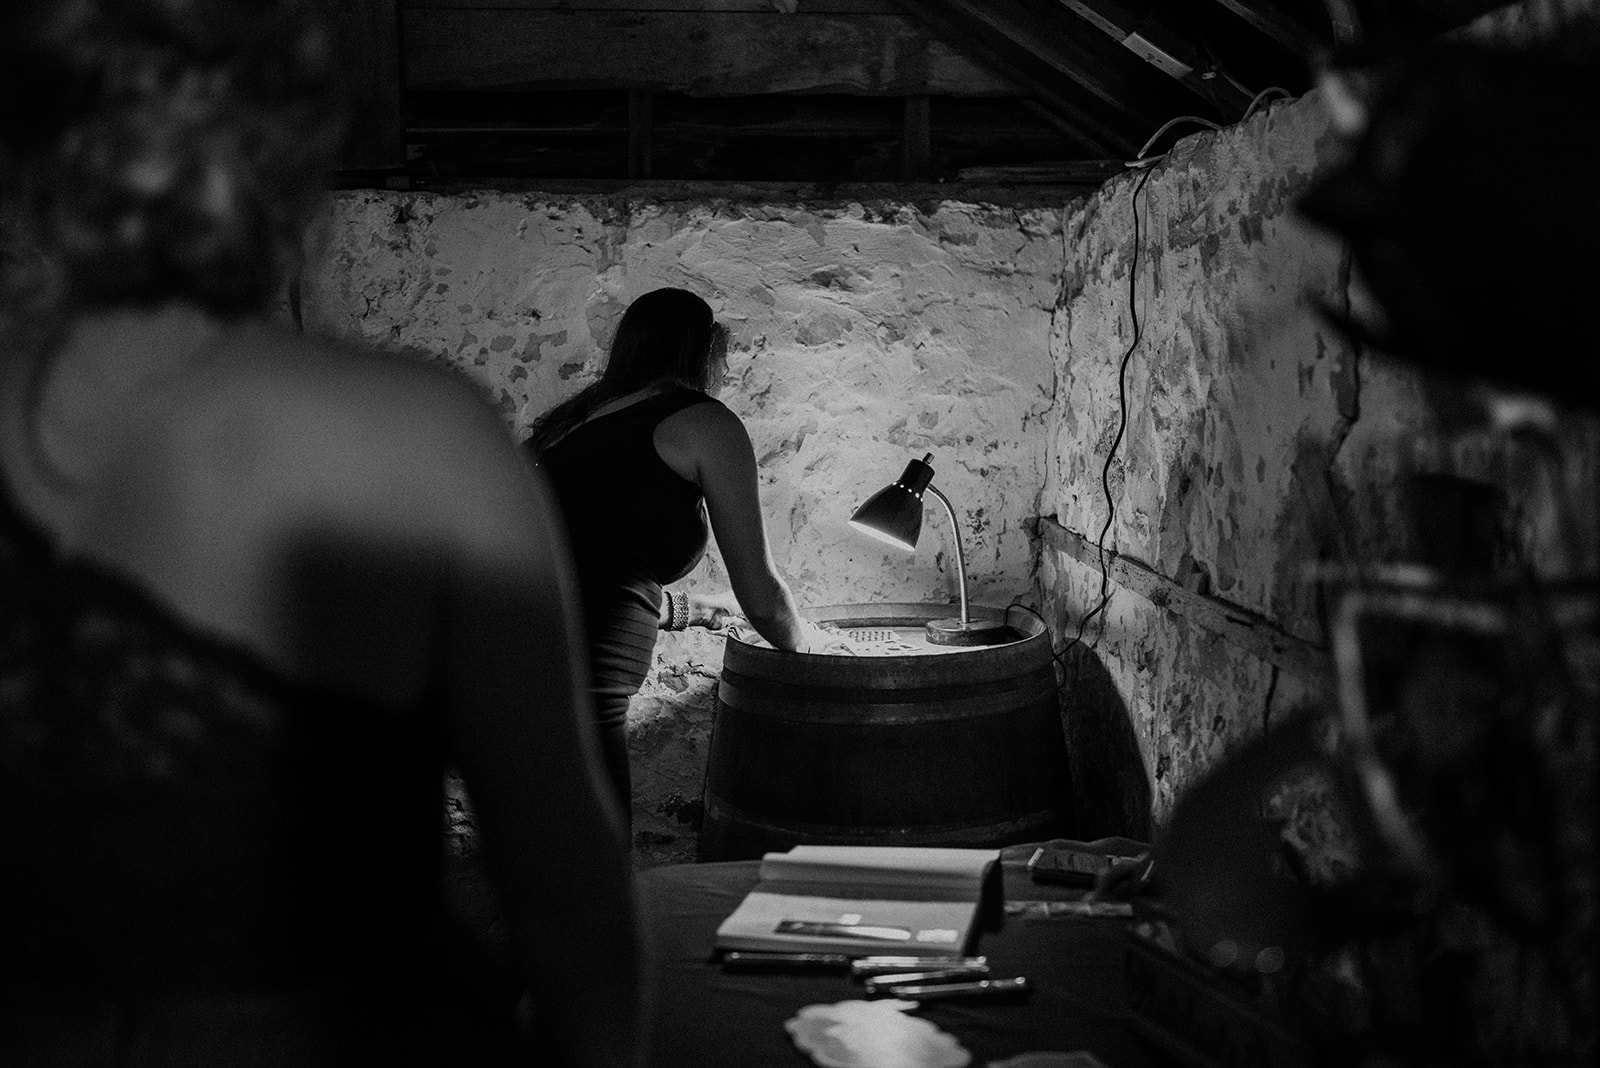 overthevineswisconsinwedding_1381.jpg